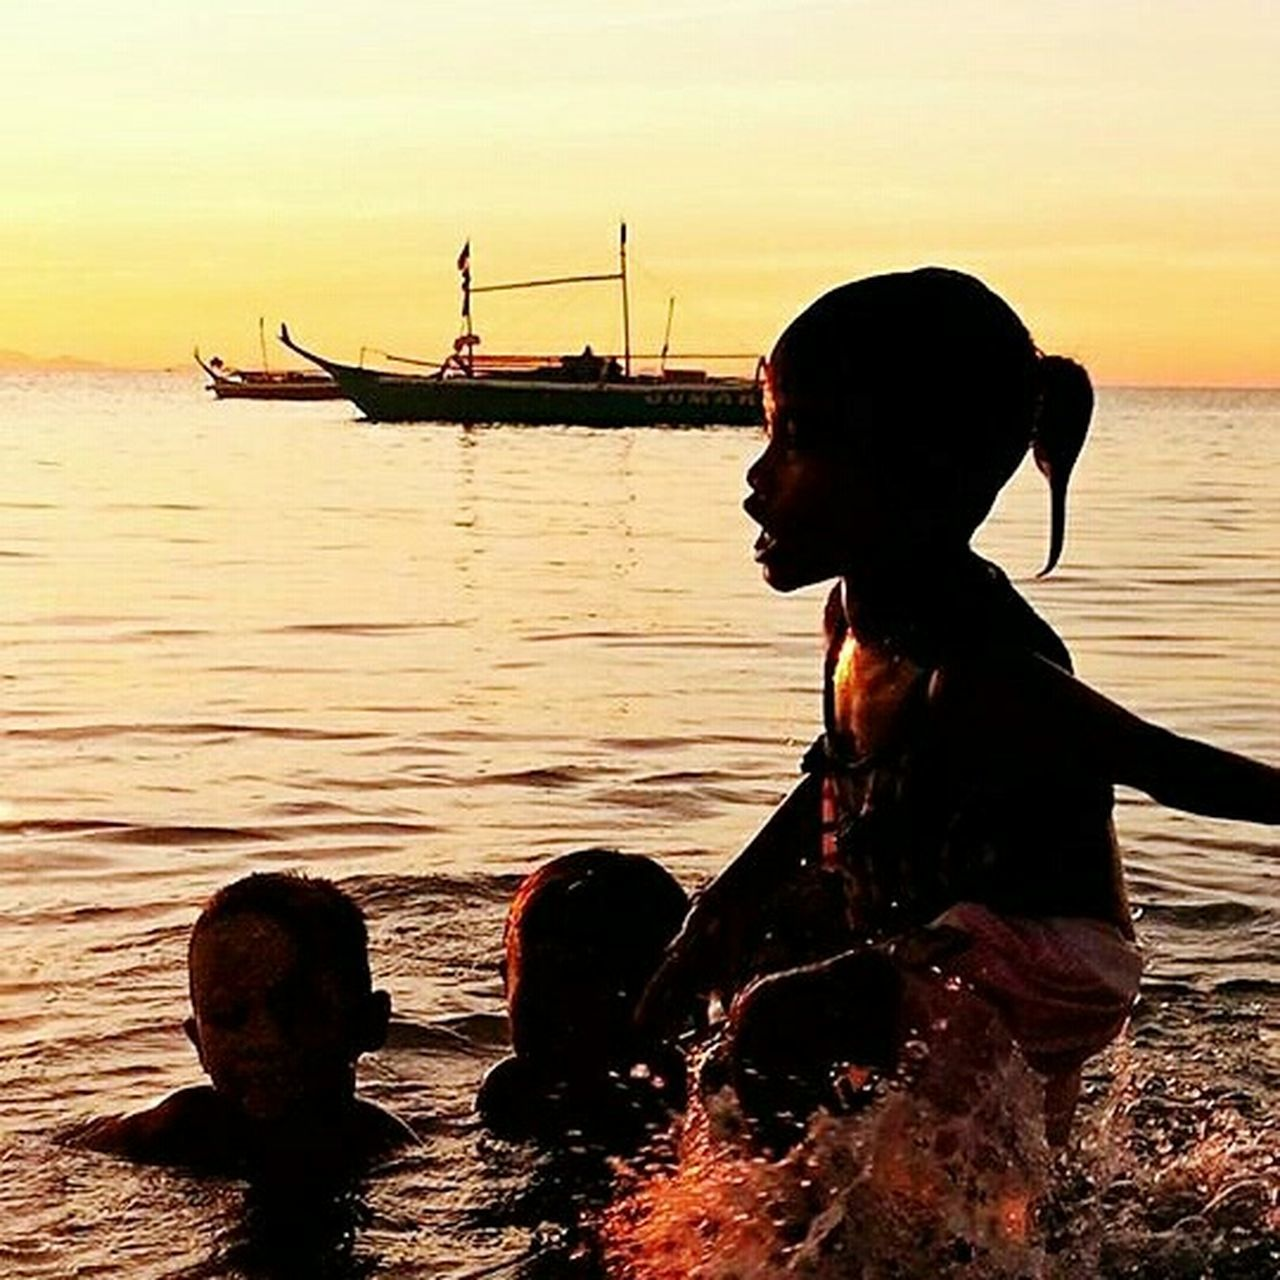 Sunset Sunset Silhouettes Portrait Beachlovers Best Friends Eyem Philippines Playfulmood EyeEm Best Shots - Nature Sunset_collection Eyem2016 Beachlife Nationalgeographic Girlpower Girl Power Eyeemcollection EyeEm Gallery Nature Photography